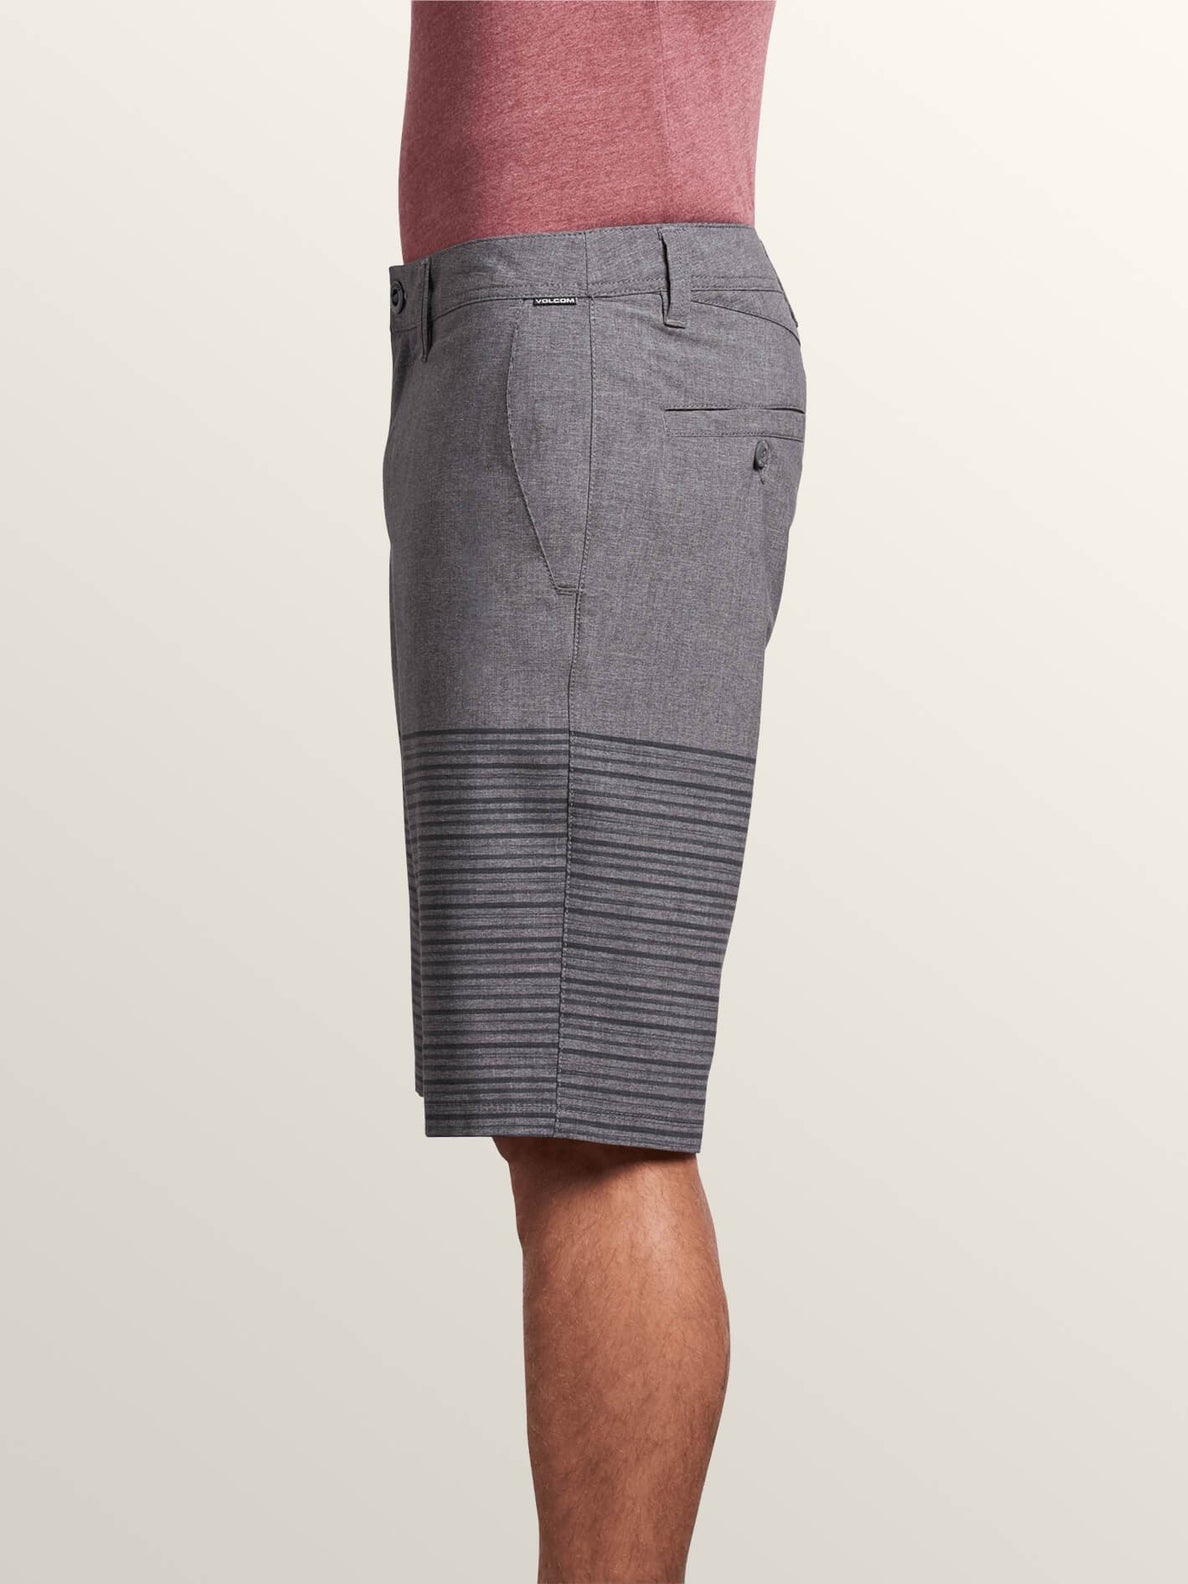 Frickin Surf N' Turf Mix Hybrid Shorts In Charcoal Heather, Alternate View